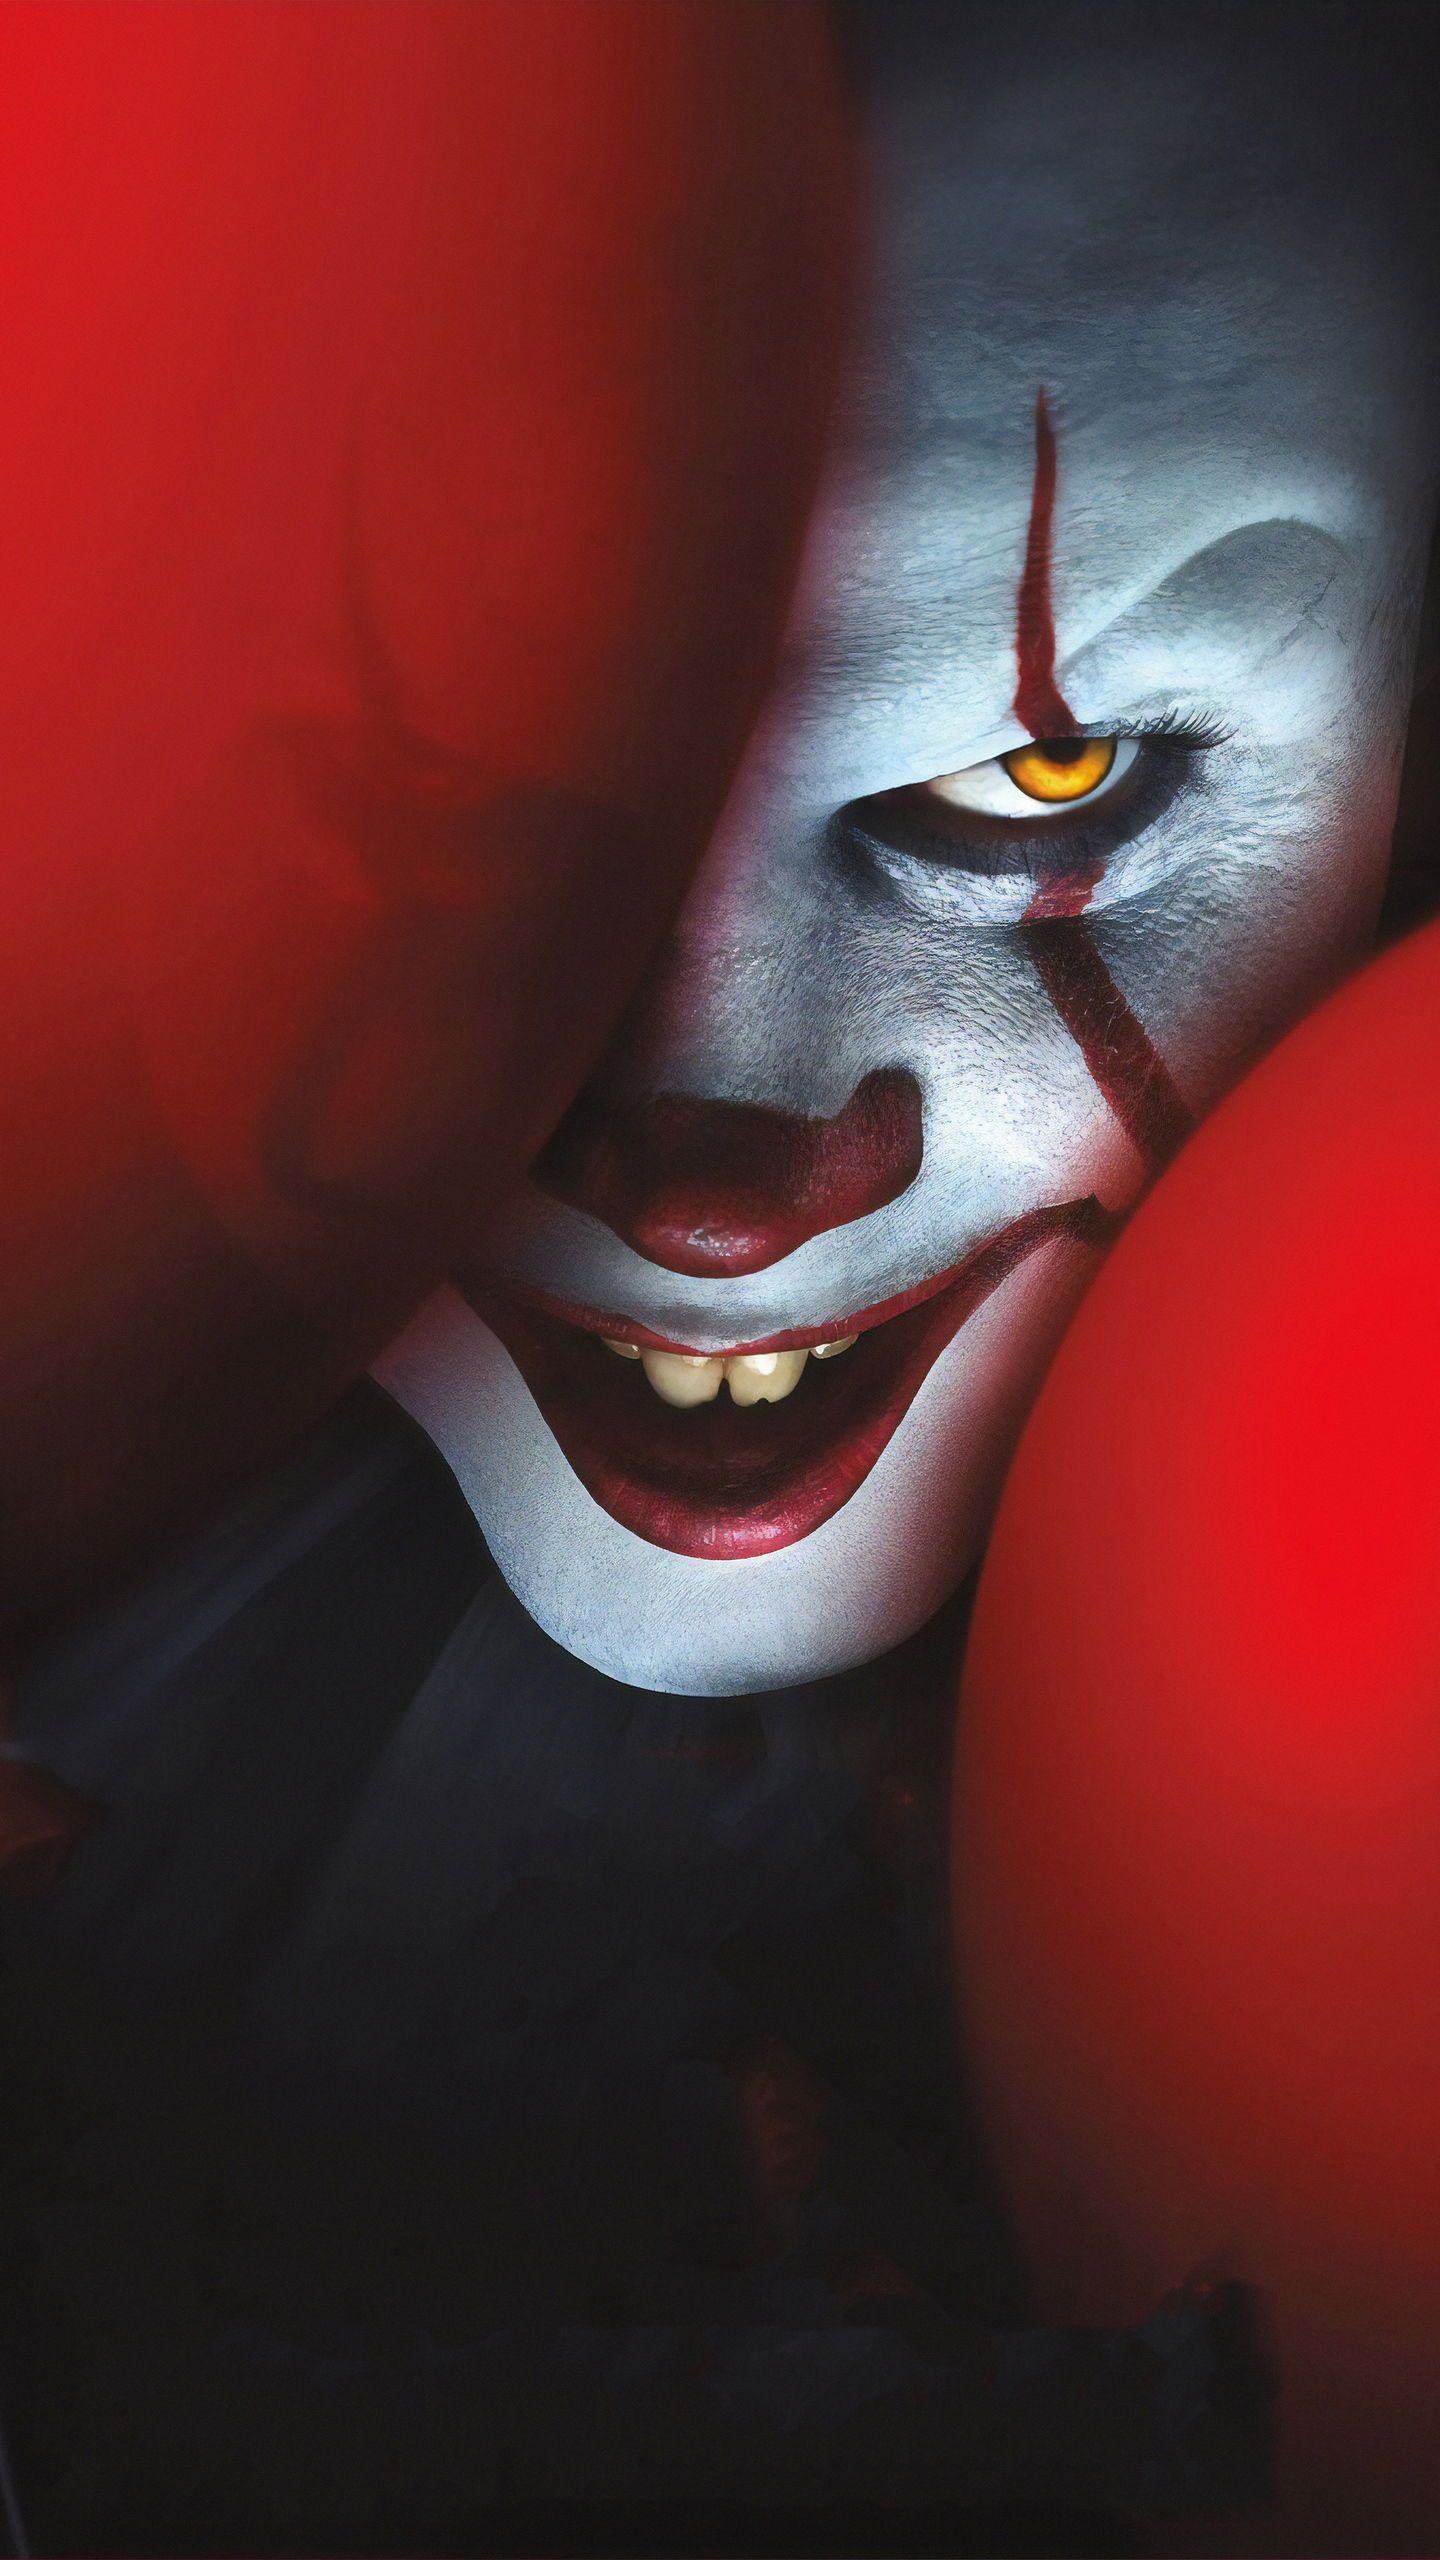 It Chapter Two Review Less Scary More Funny Warner Bros Pennywise Stephen King Horror Movie Review Joker Hd Wallpaper Creepy Faces Pennywise The Clown